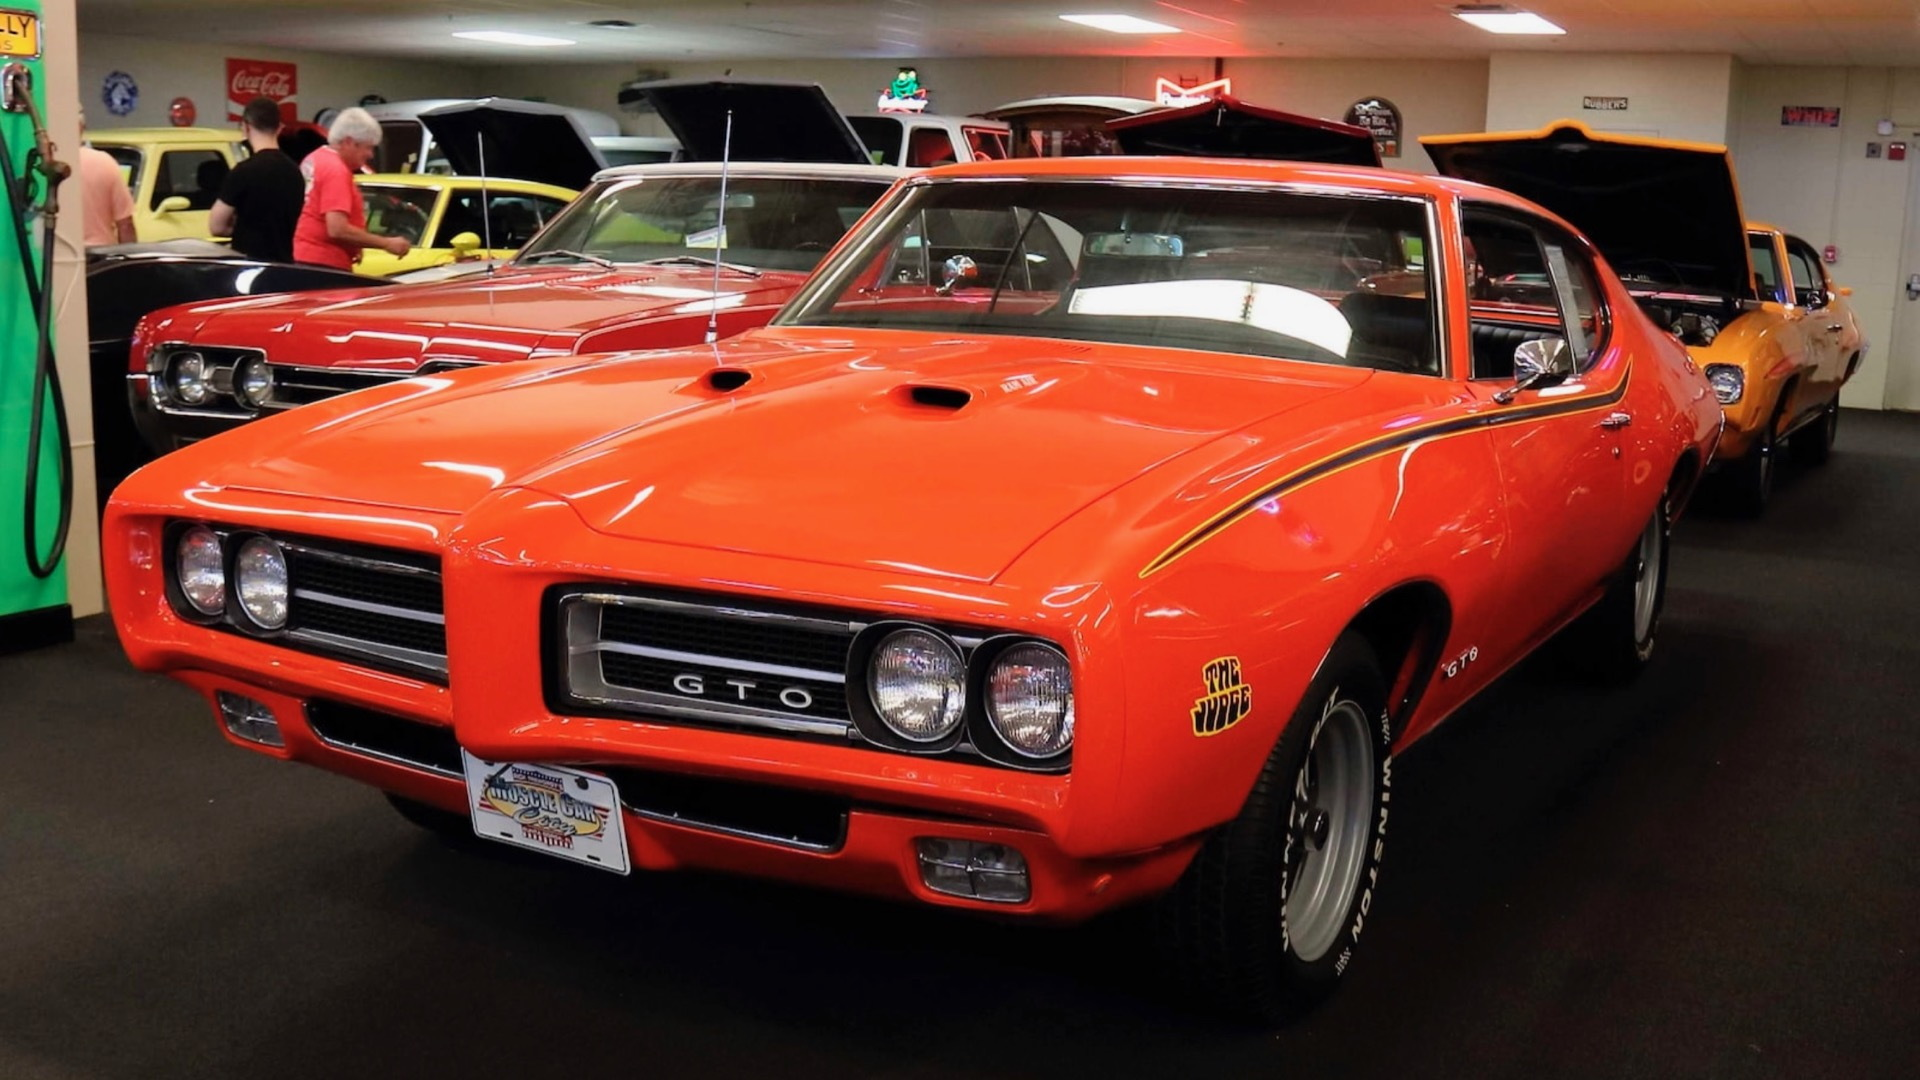 1969 Pontiac GTO Judge from Rick Treworgy collection (Photo by Mecum Auctions)